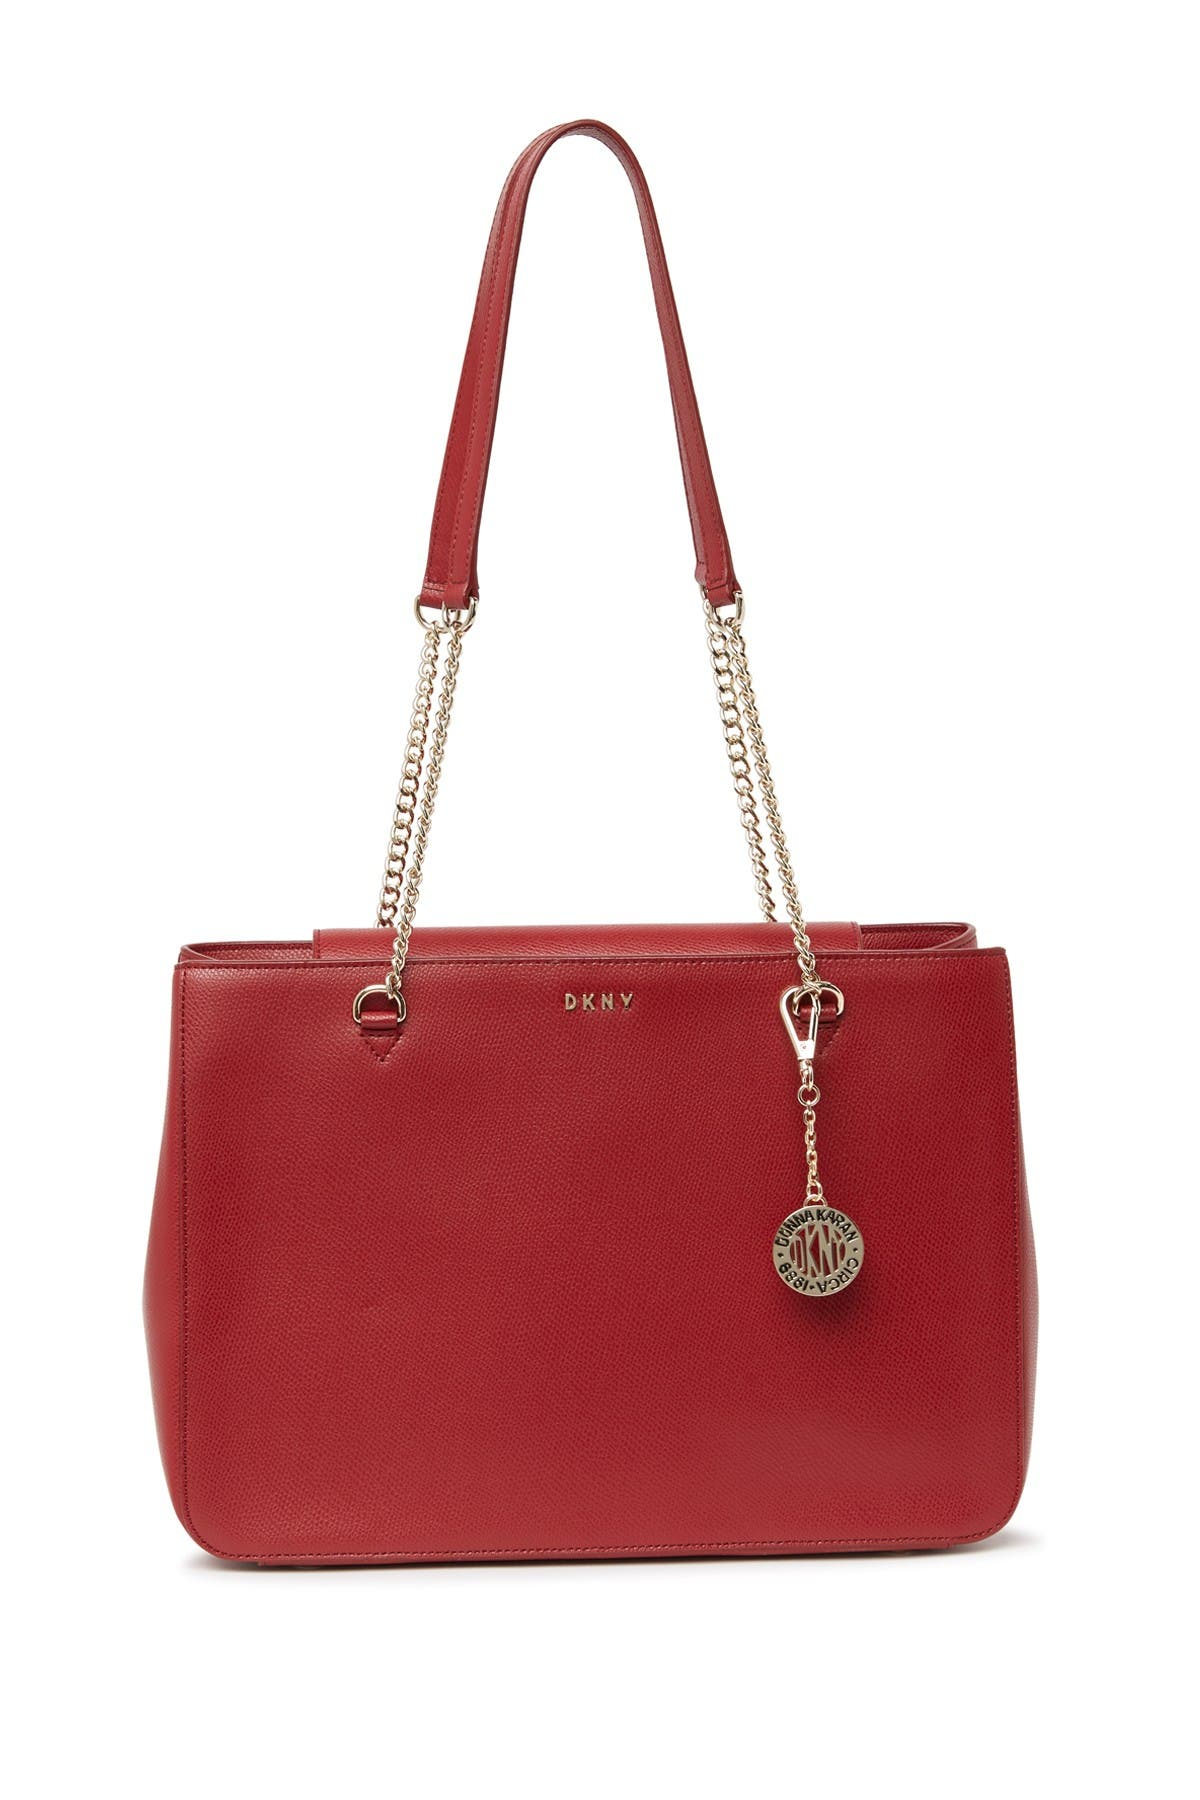 Image of DKNY Leather Shopper